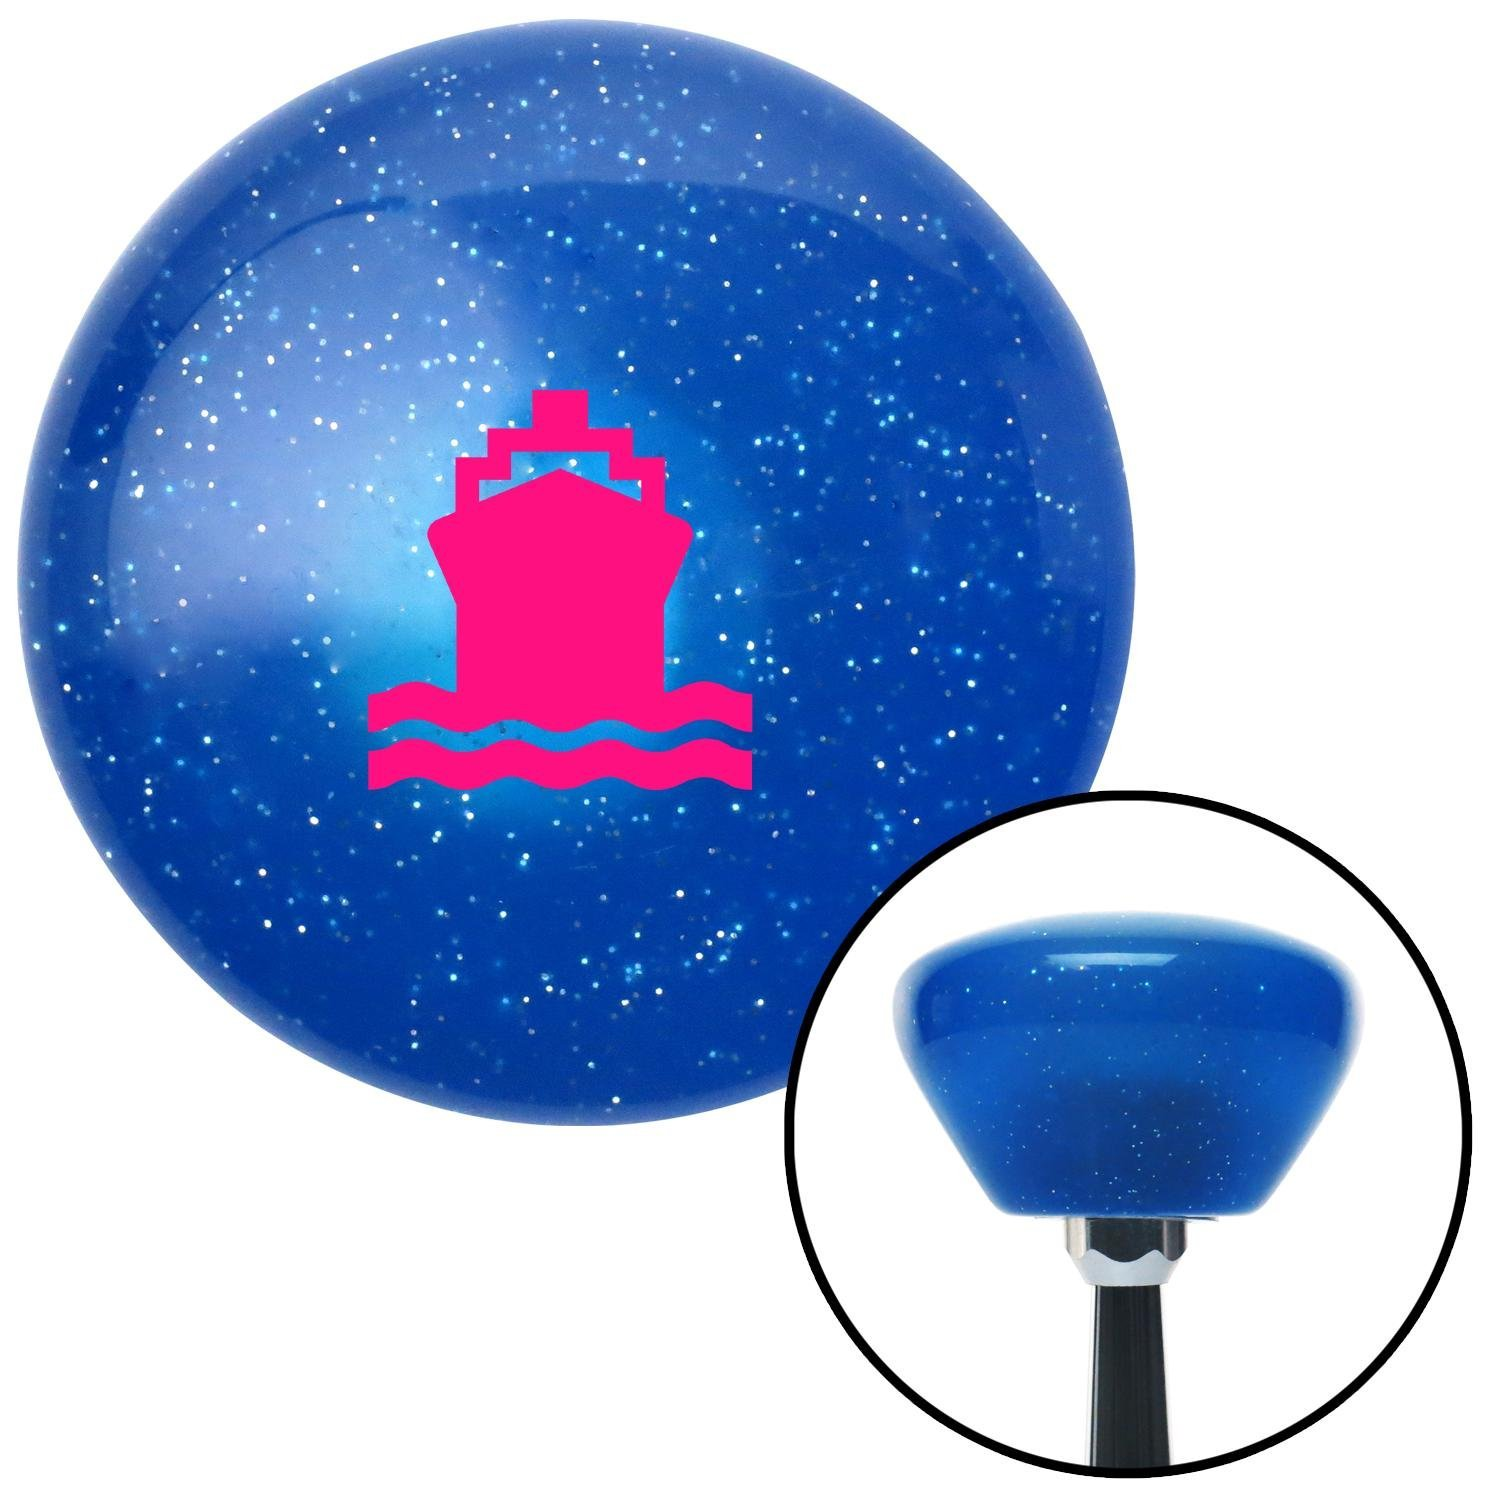 Pink Boat American Shifter 190681 Blue Retro Metal Flake Shift Knob with M16 x 1.5 Insert